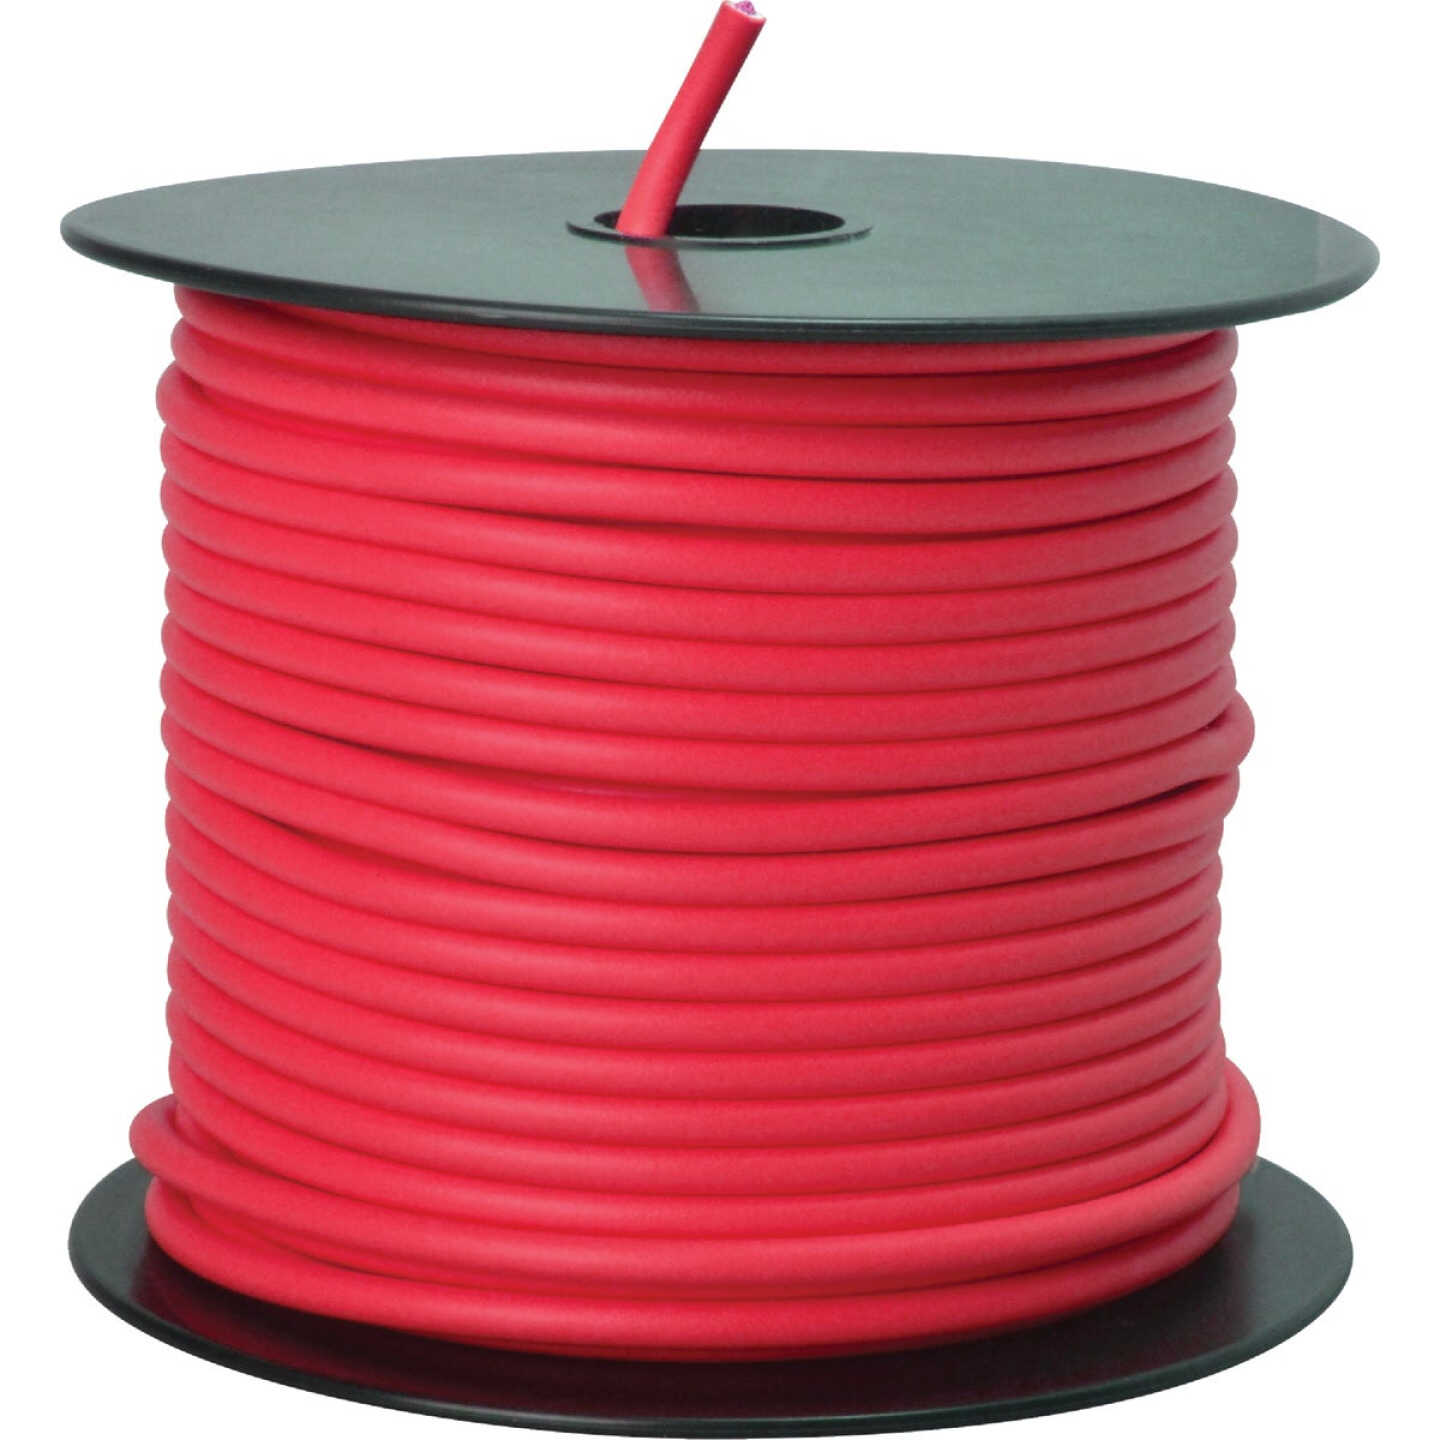 ROAD POWER 100 Ft. 12 Ga. PVC-Coated Primary Wire, Red Image 1